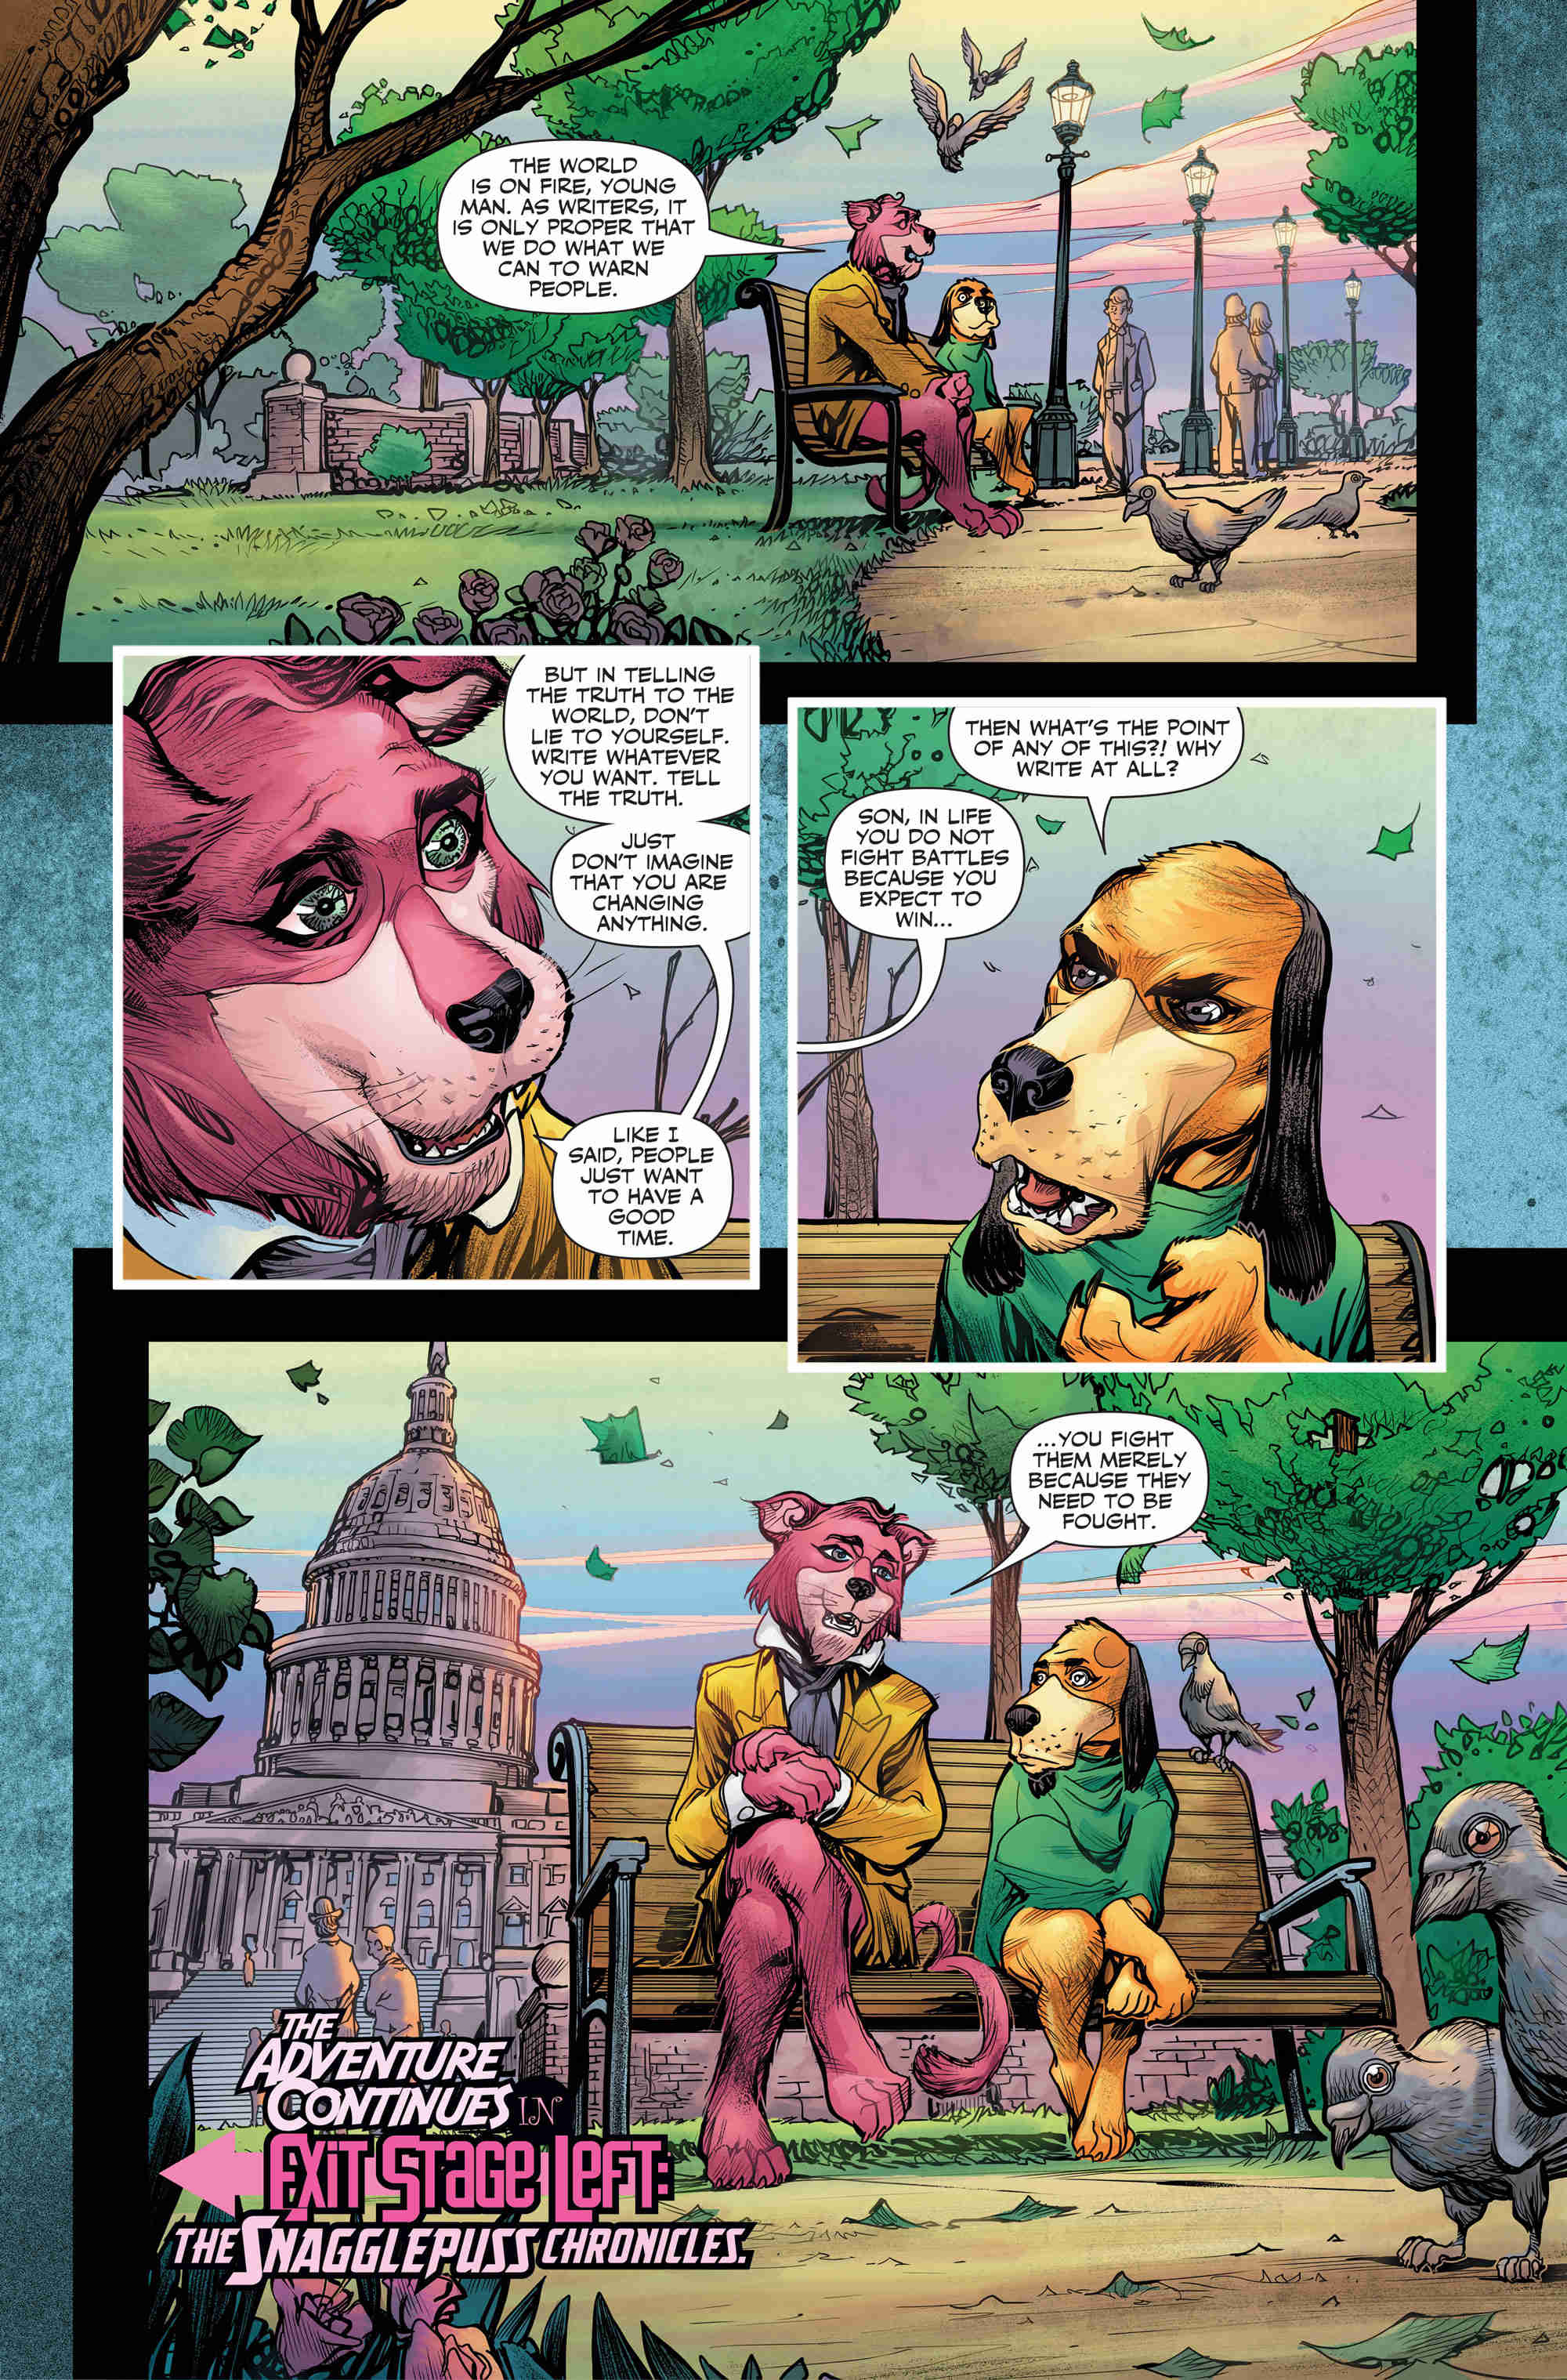 Snagglepuss Leads DC's Second Wave Of Hanna-Barbera Titles